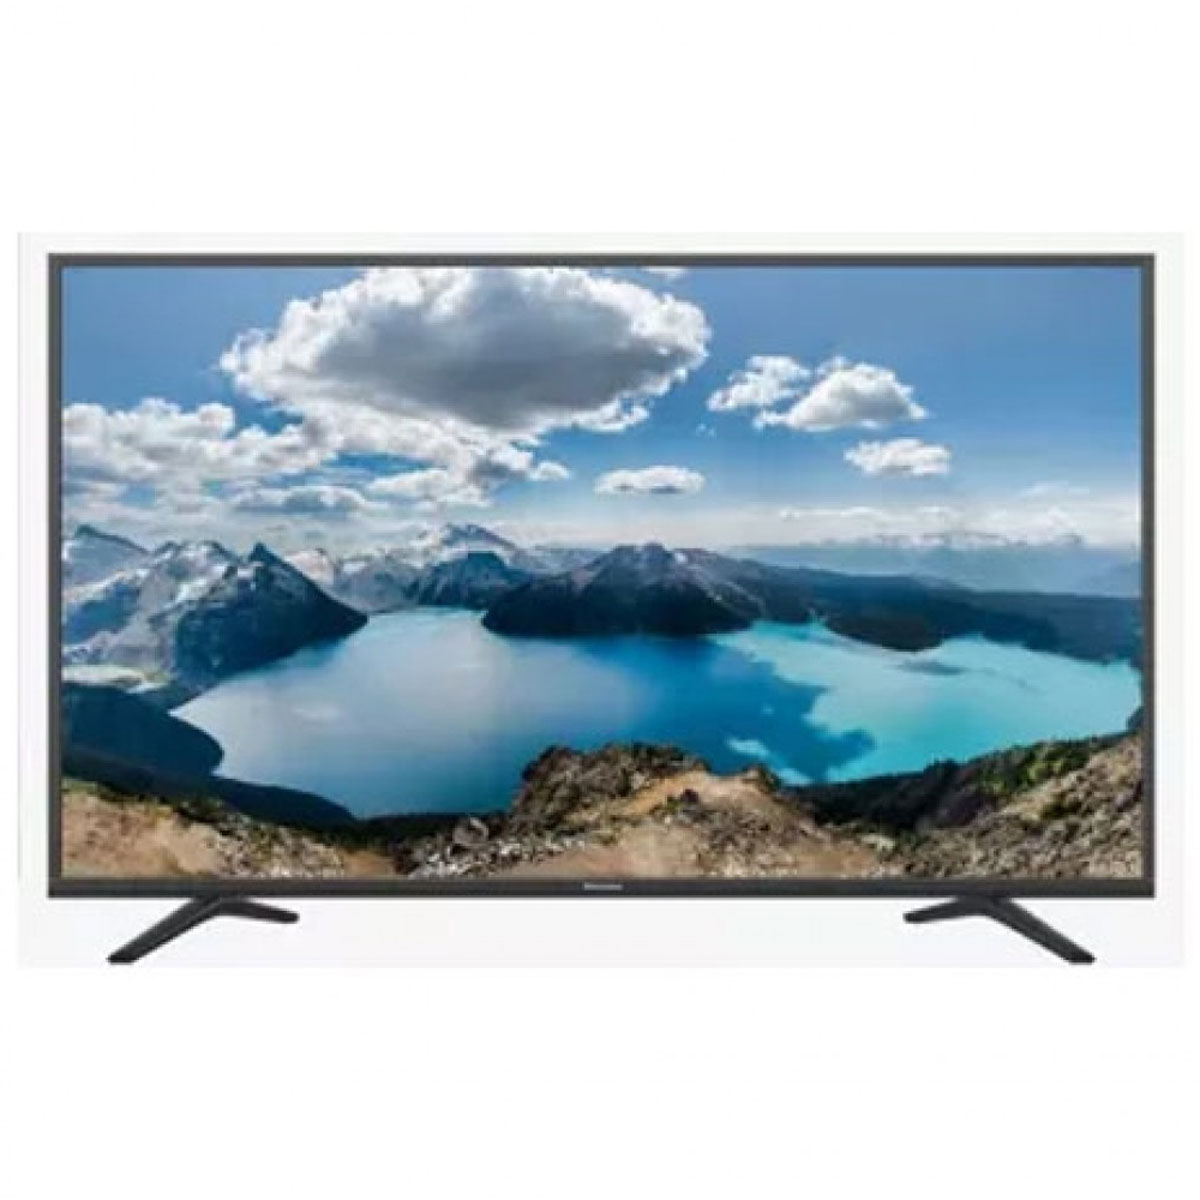 Hisense 43 Inch Full HD LED TV (43E5100EX)